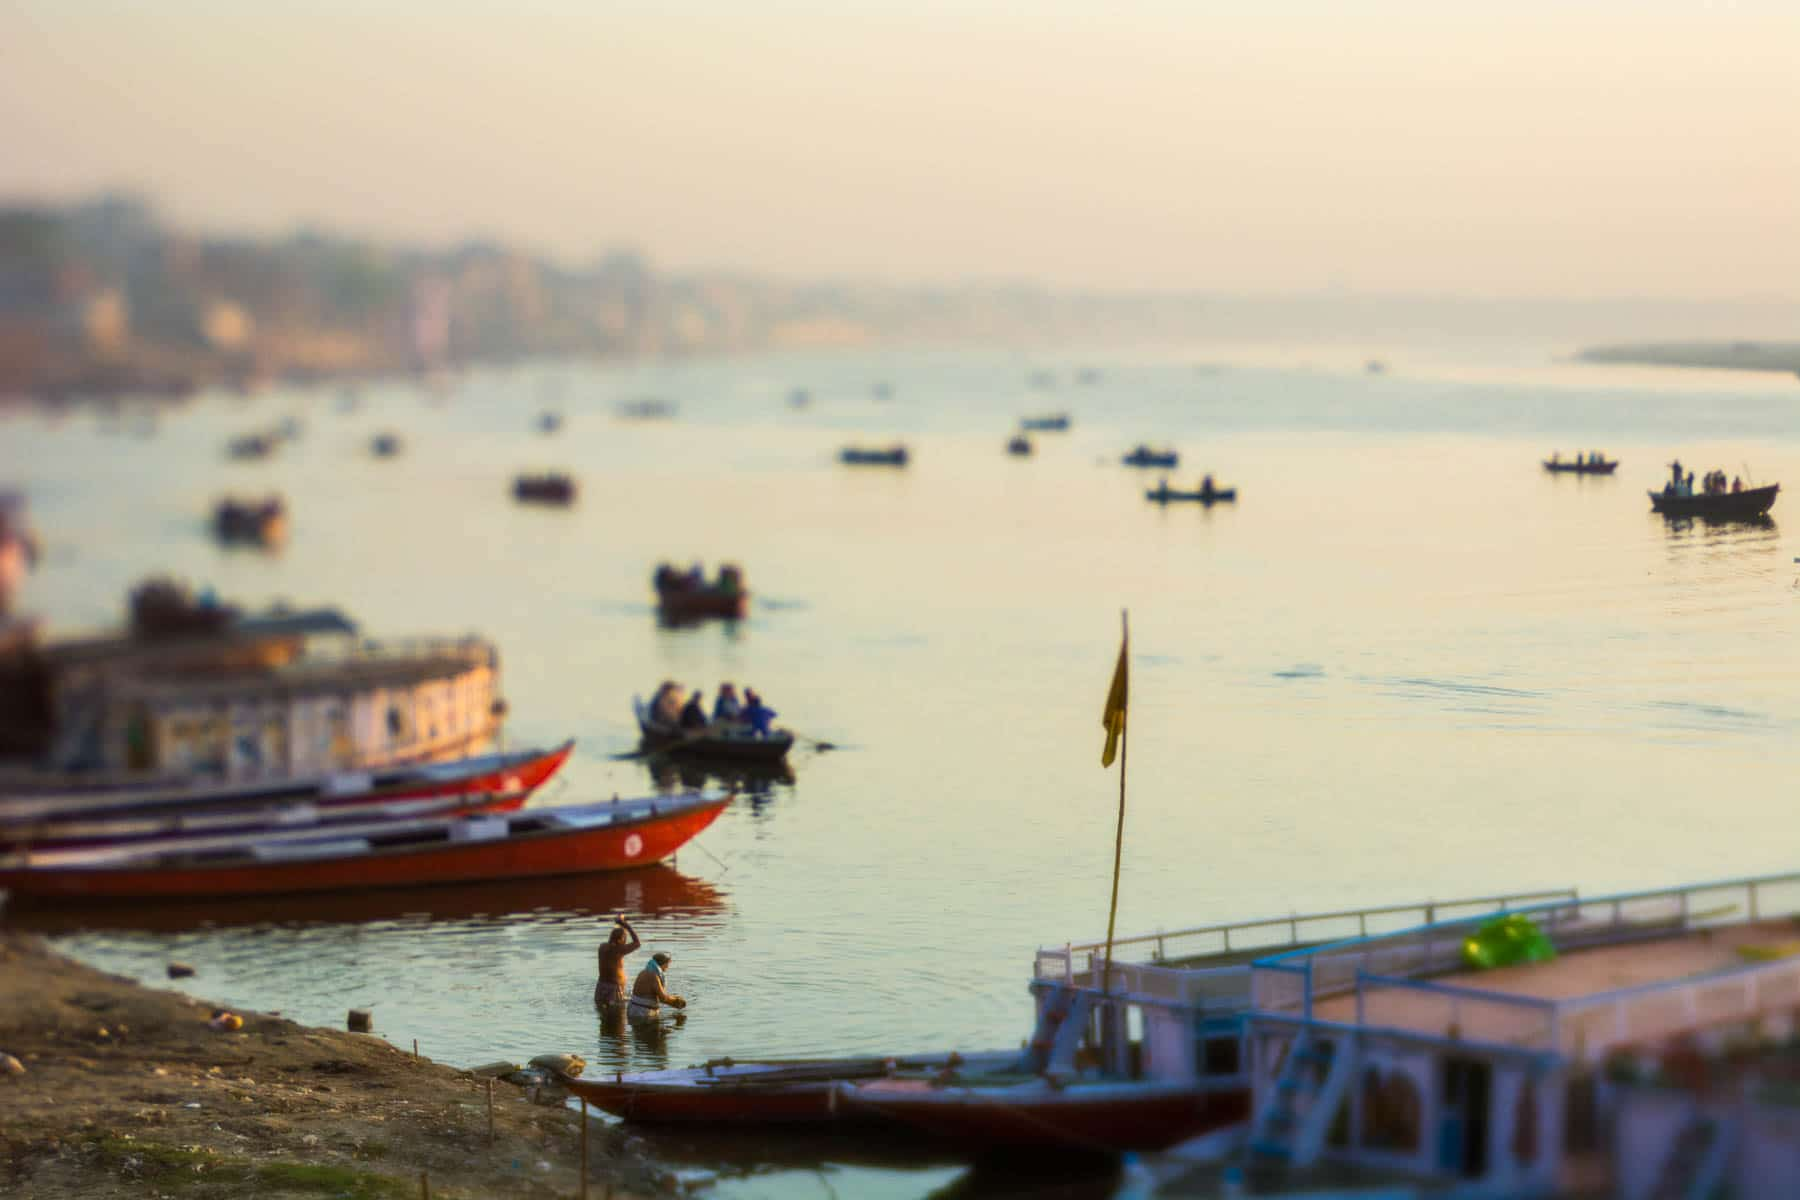 Lensbaby Edge 50 Optic review - Sunrise bath time in the Ganges on the ghats of Varanasi, India - Lost With Purpose